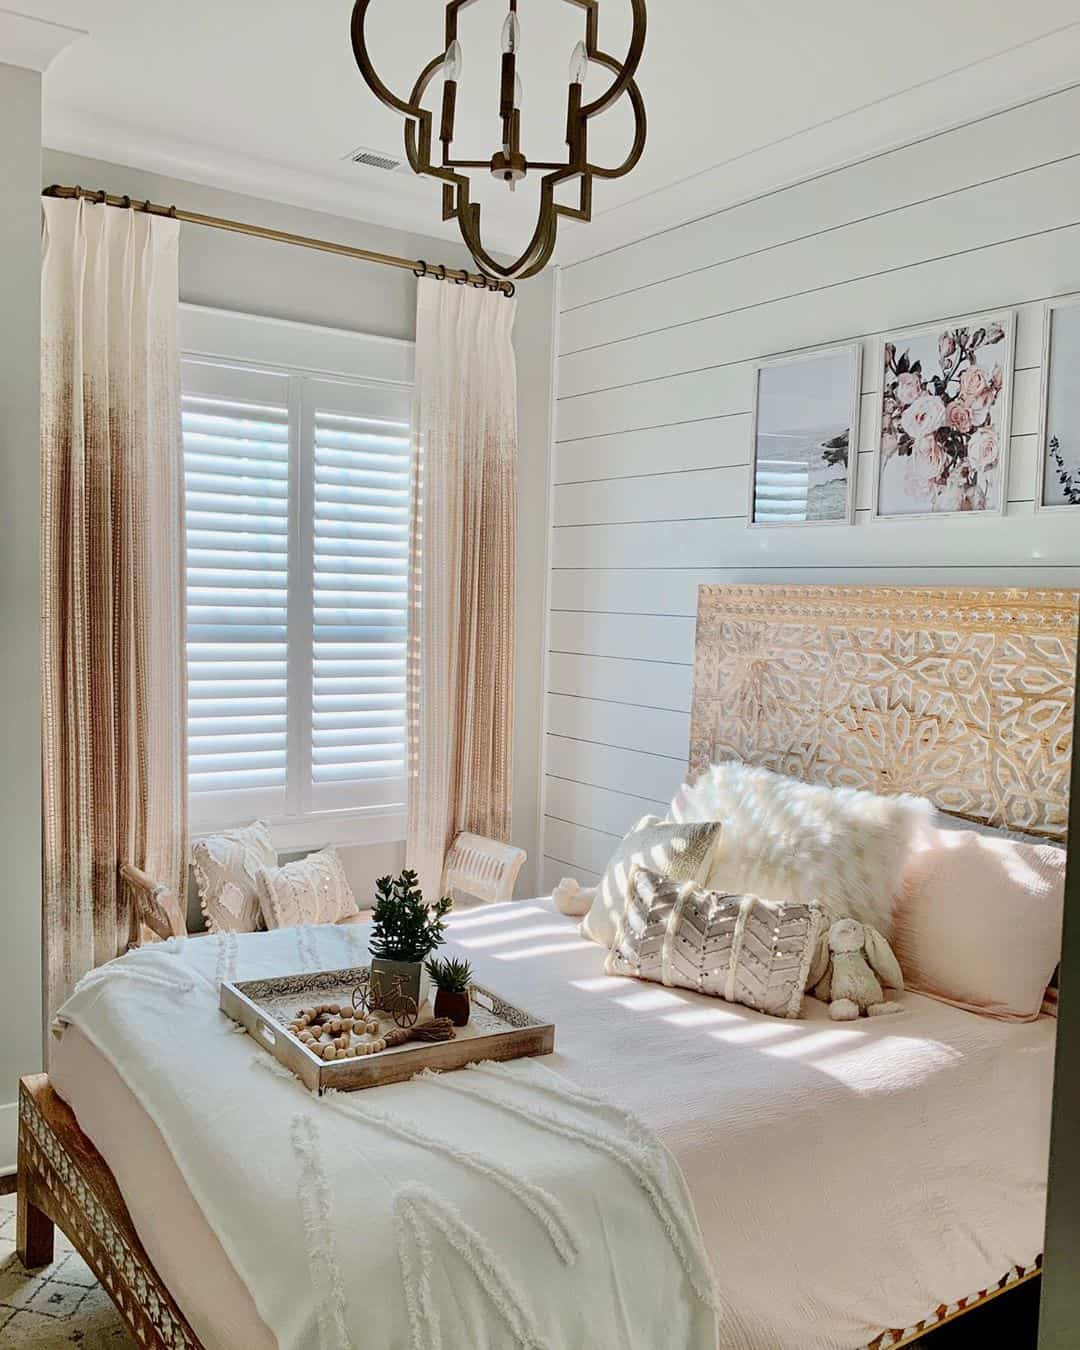 Bedroom Trends 2021 – Top 12 Efficient Ideas to Refresh Your Home